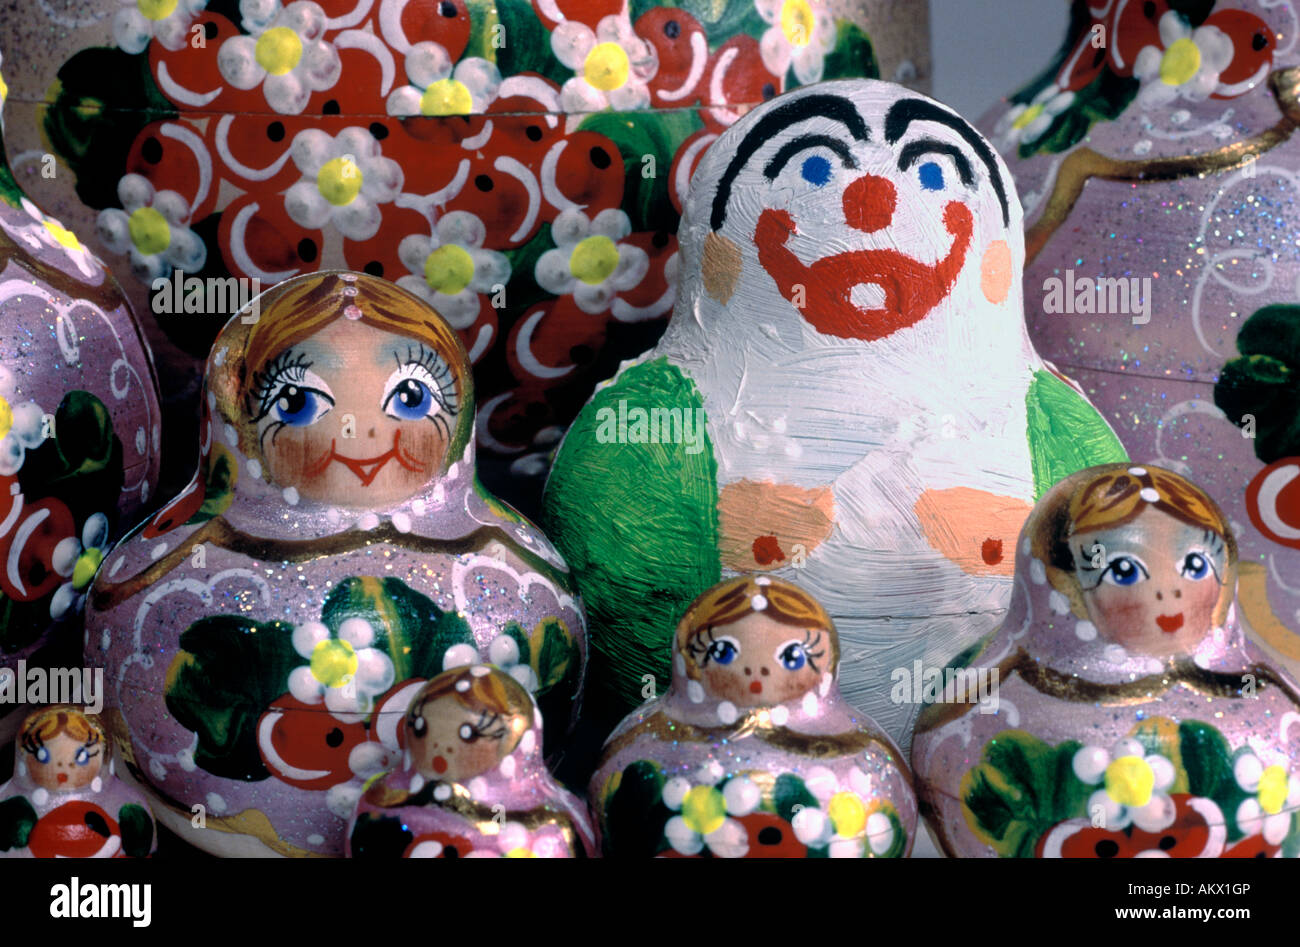 Russian Dolls with a Deviant. Grouping, close-up. - Stock Image